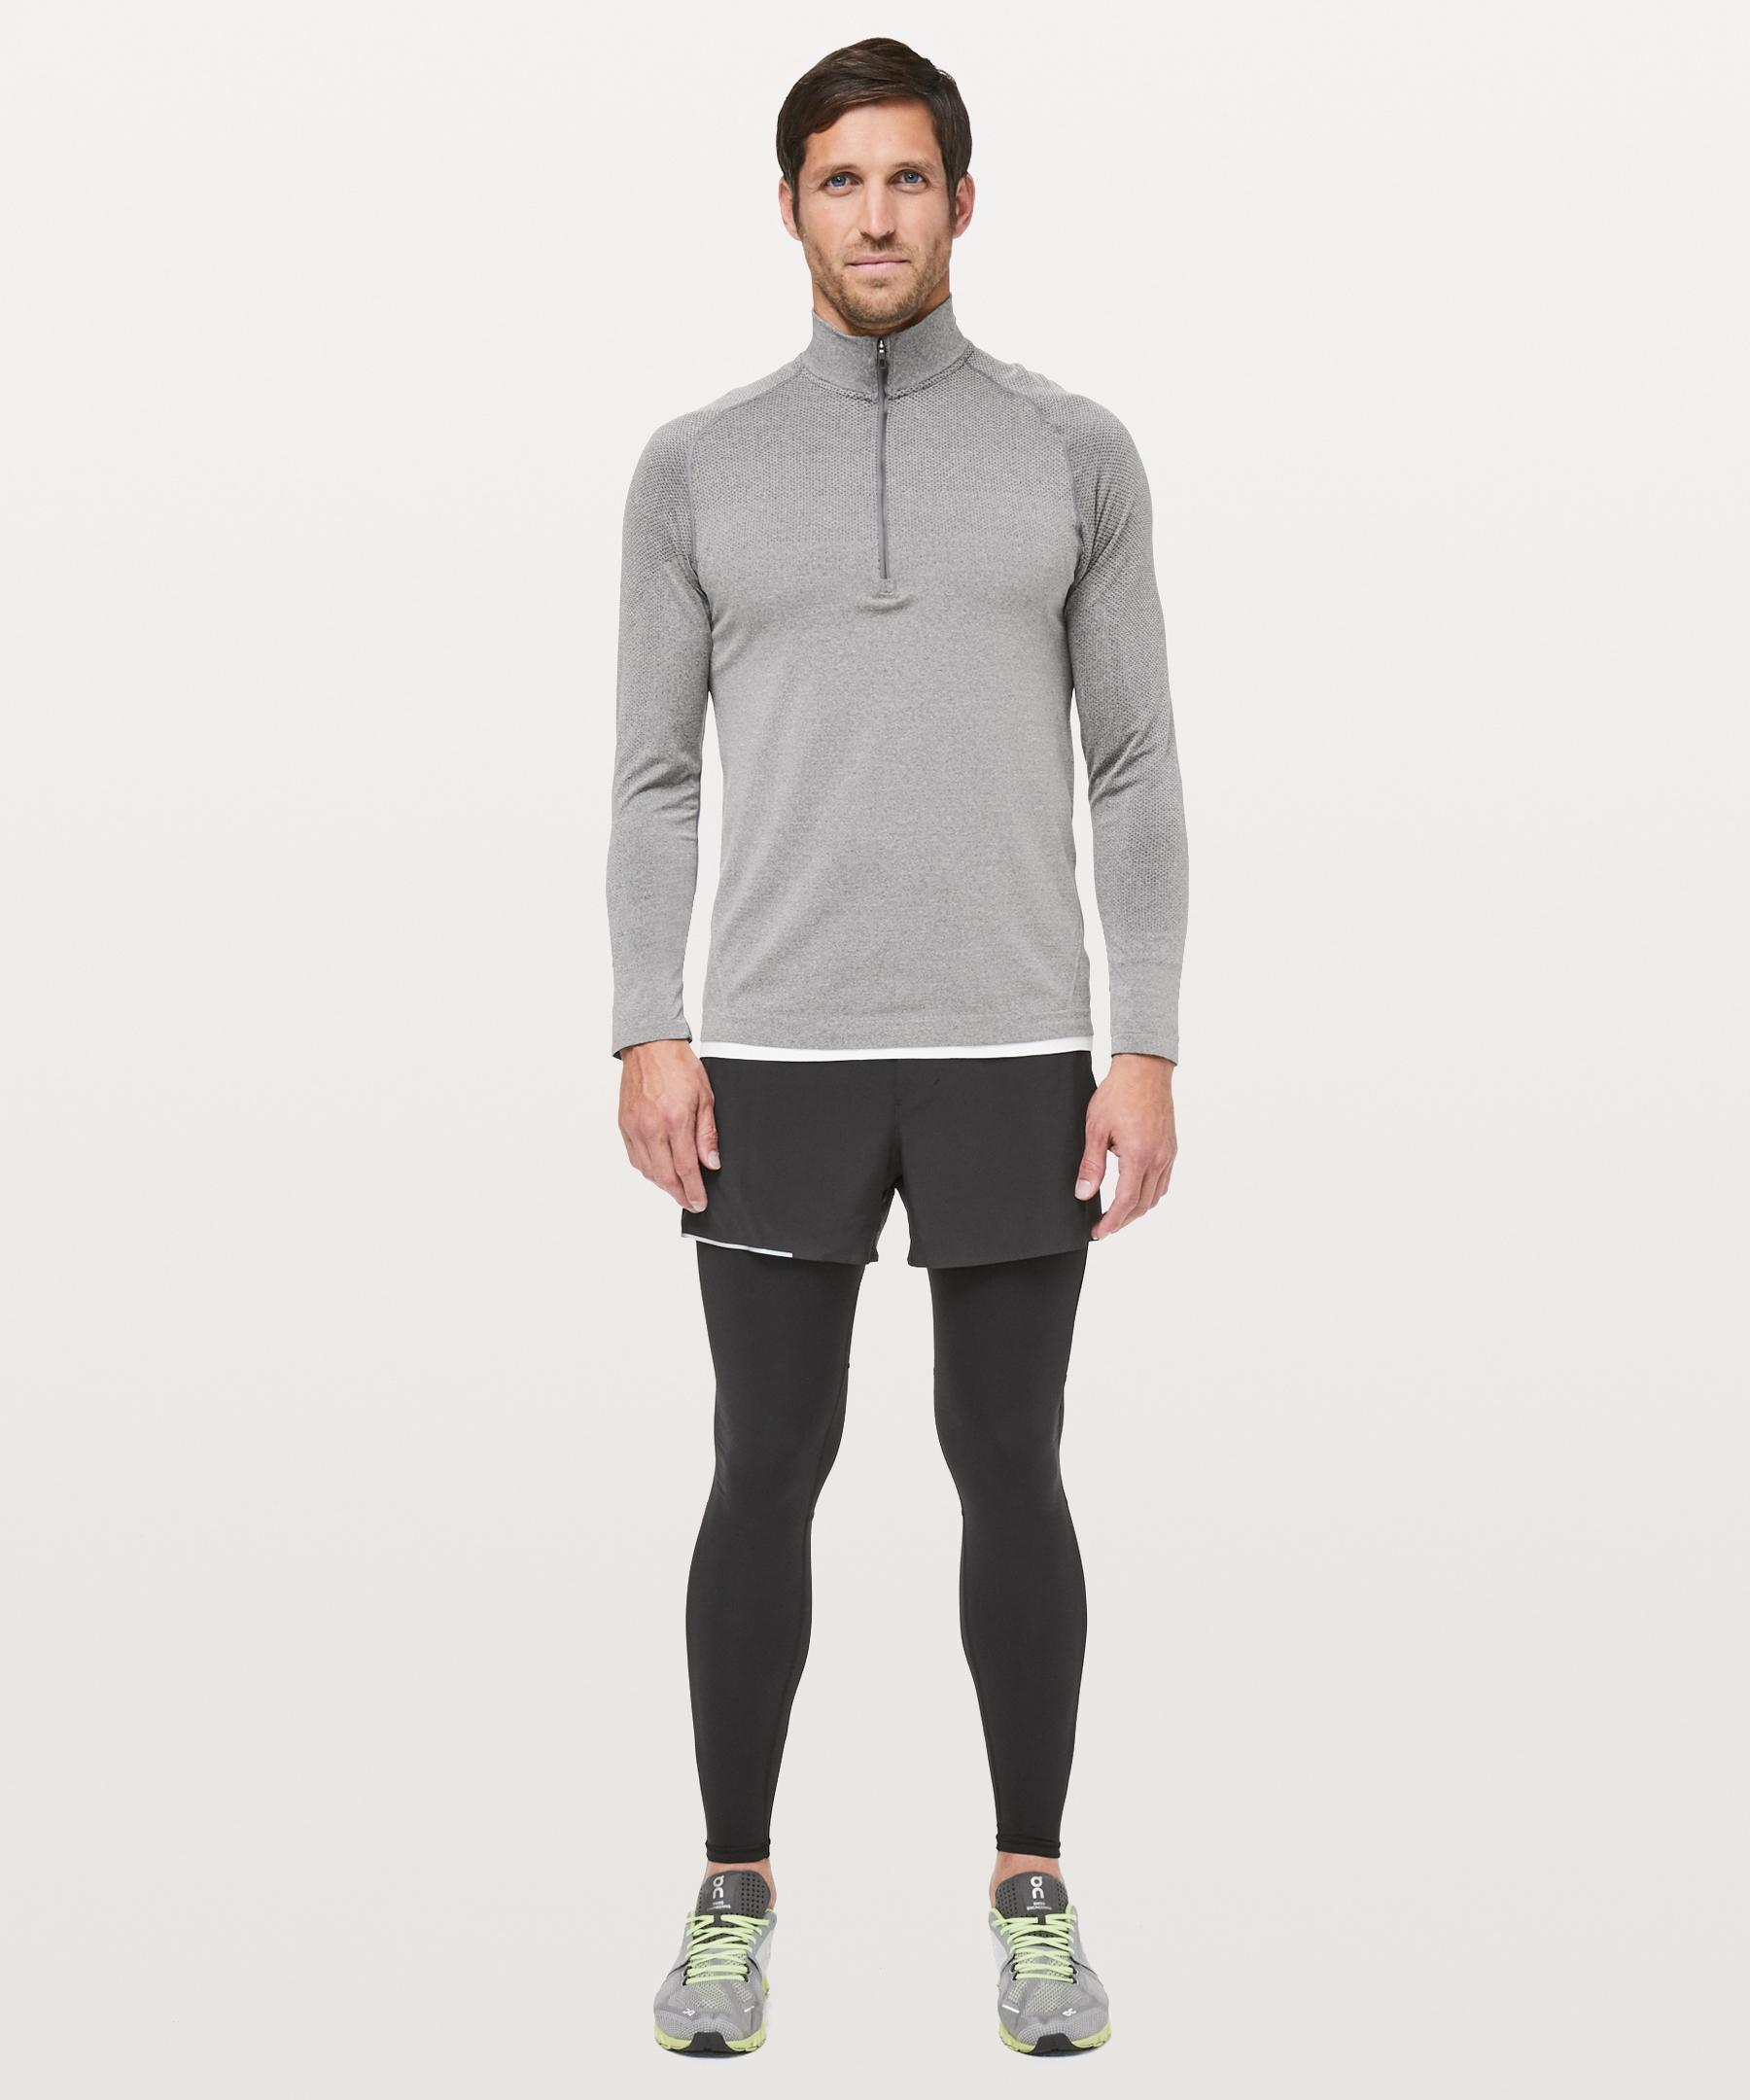 70a966ef37e3a lululemon athletica Surge Light Tight in Black for Men - Lyst